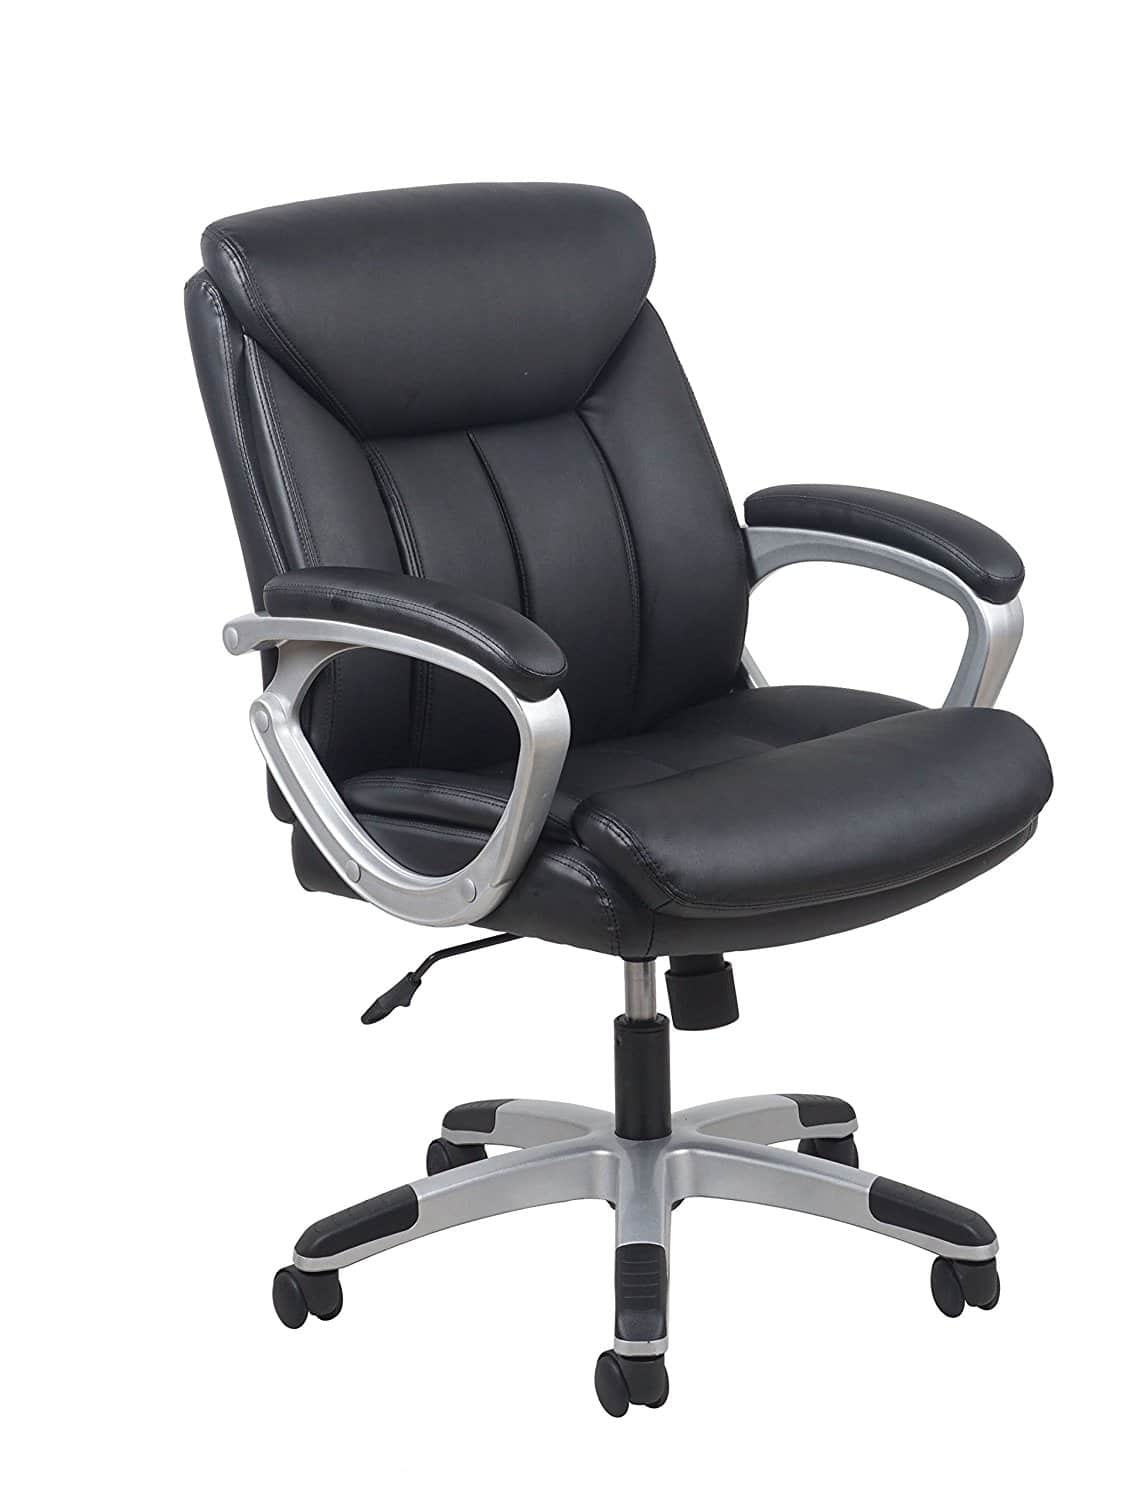 Ergonomic Office Chairs Best Ergonomic Office Chairs Review Dec 2018 A